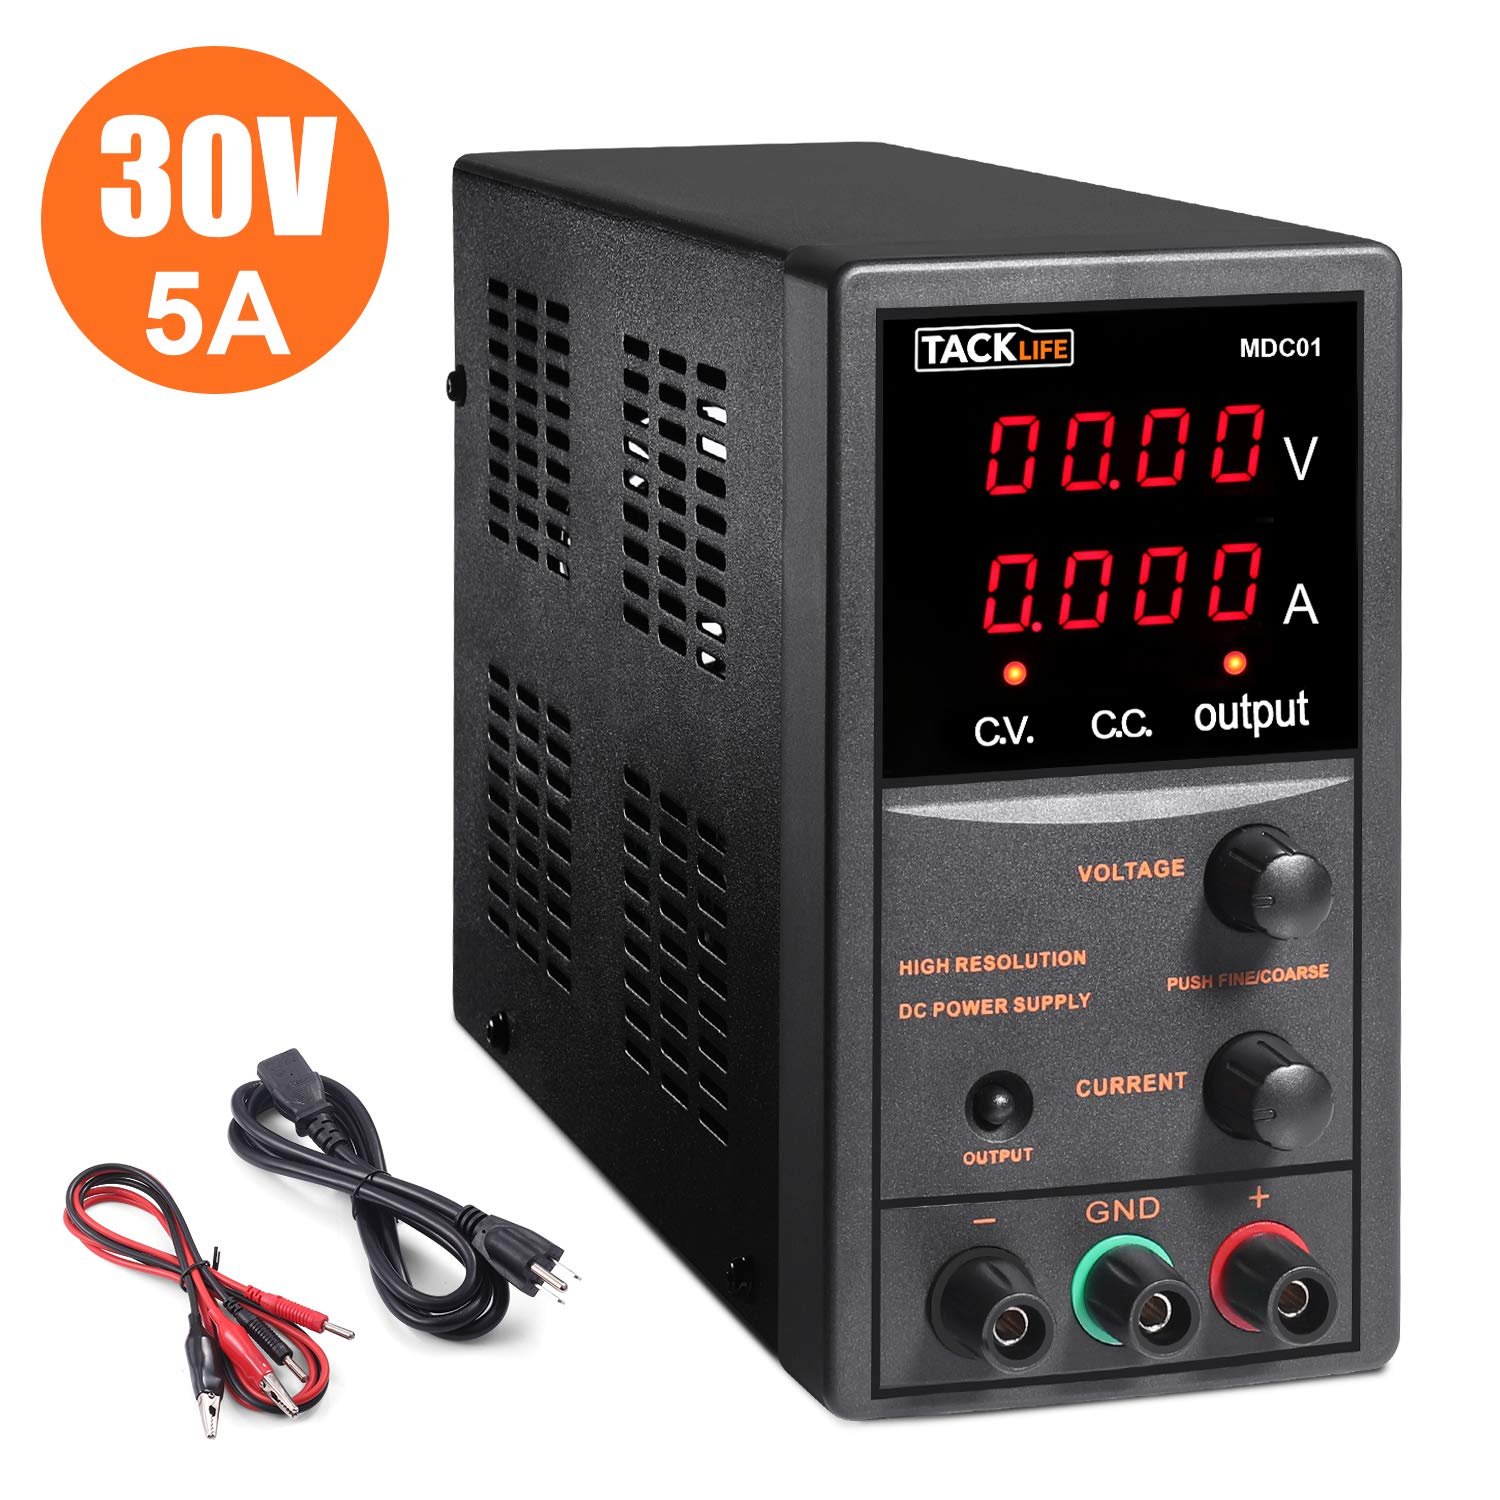 DC Power Supply Variable, Tacklife 4 digital LCD display (0-30V/0-5A) Switching DC Regulated Power Supply, Reverse polarity/high temperature protection, with 110V/115CM Alligator Leads